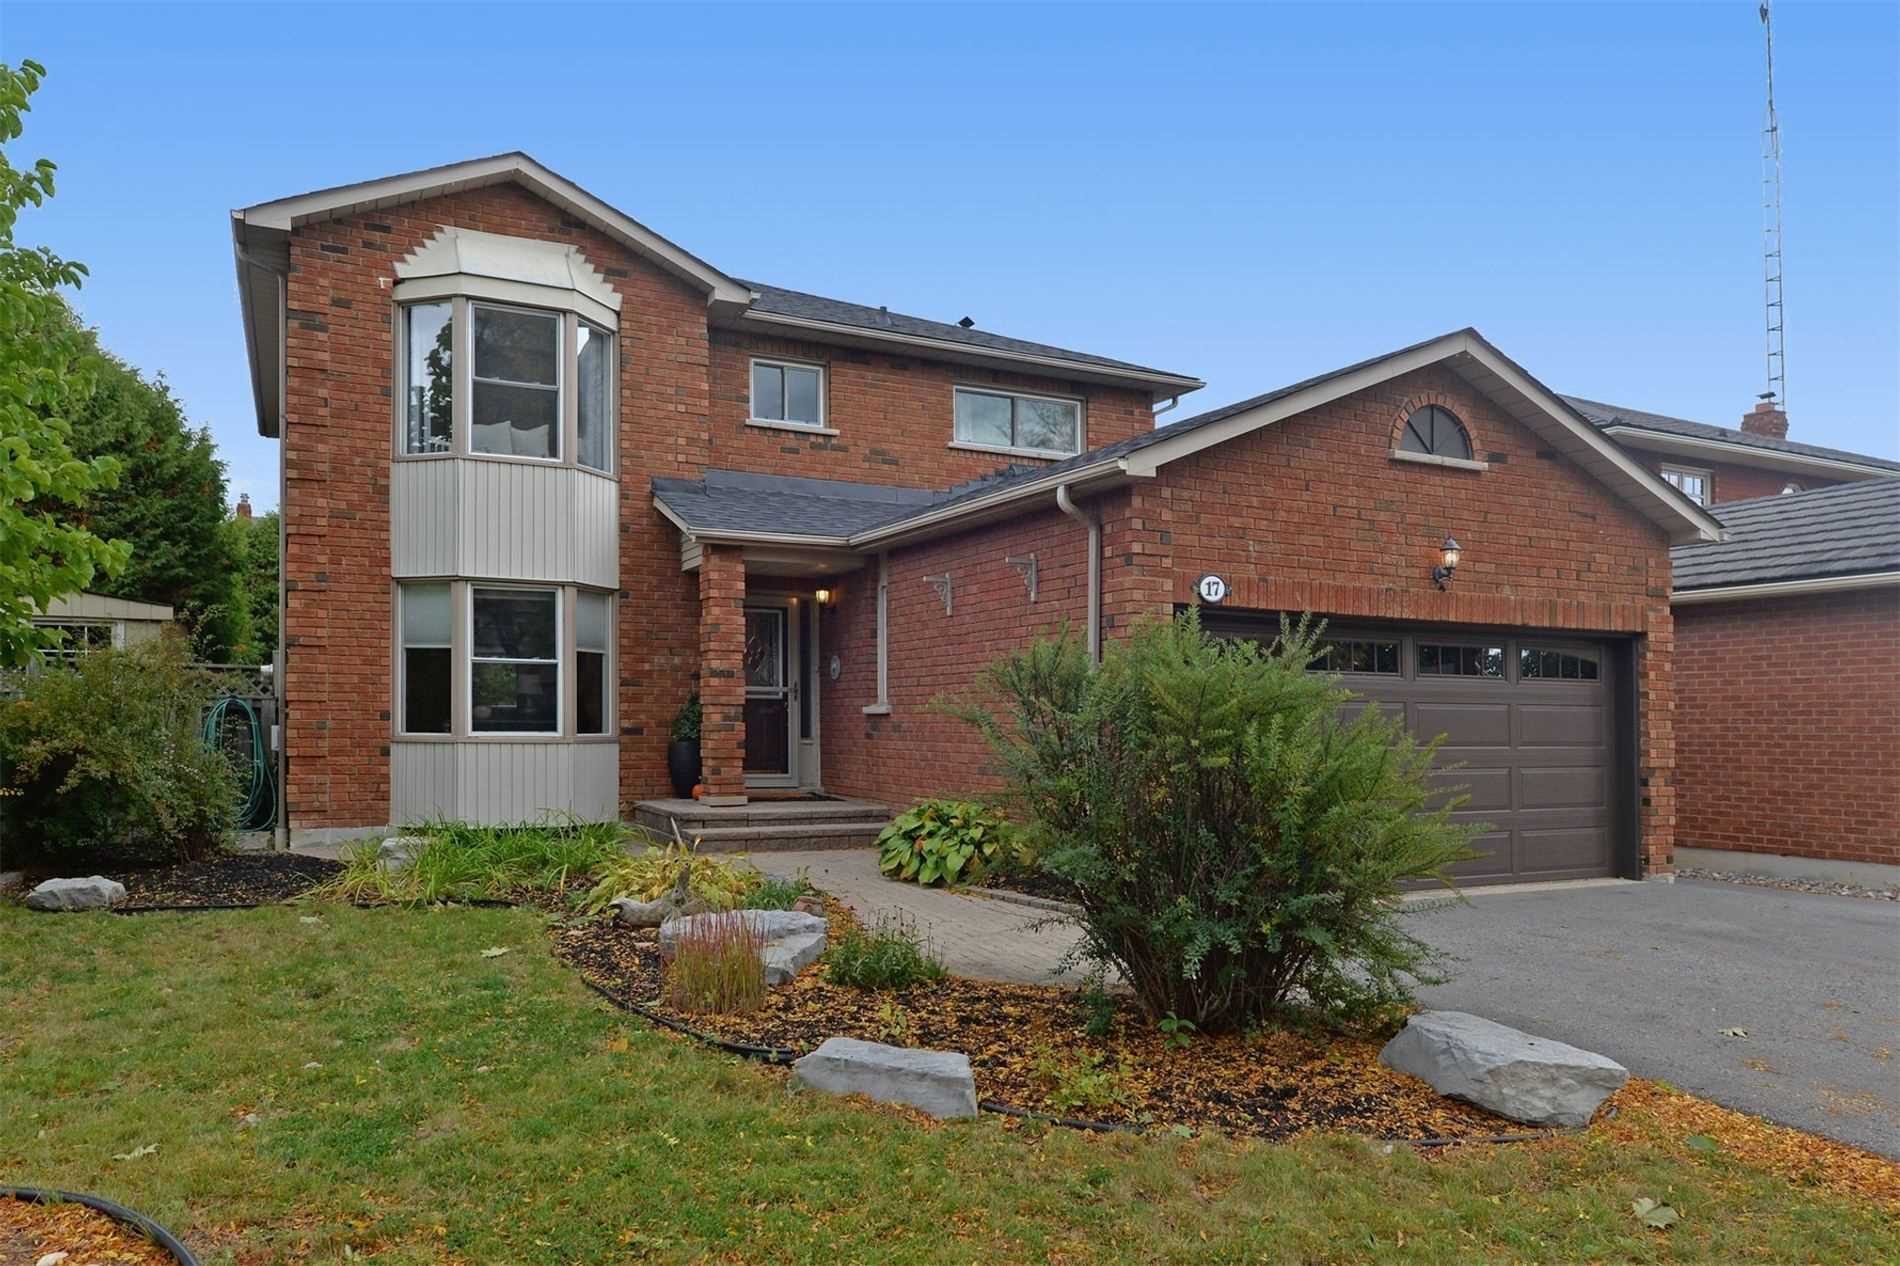 17 Stafford Cres, Whitby, Ontario L1N8T4, 4 Bedrooms Bedrooms, 8 Rooms Rooms,3 BathroomsBathrooms,Detached,For Sale,Stafford,E4946321